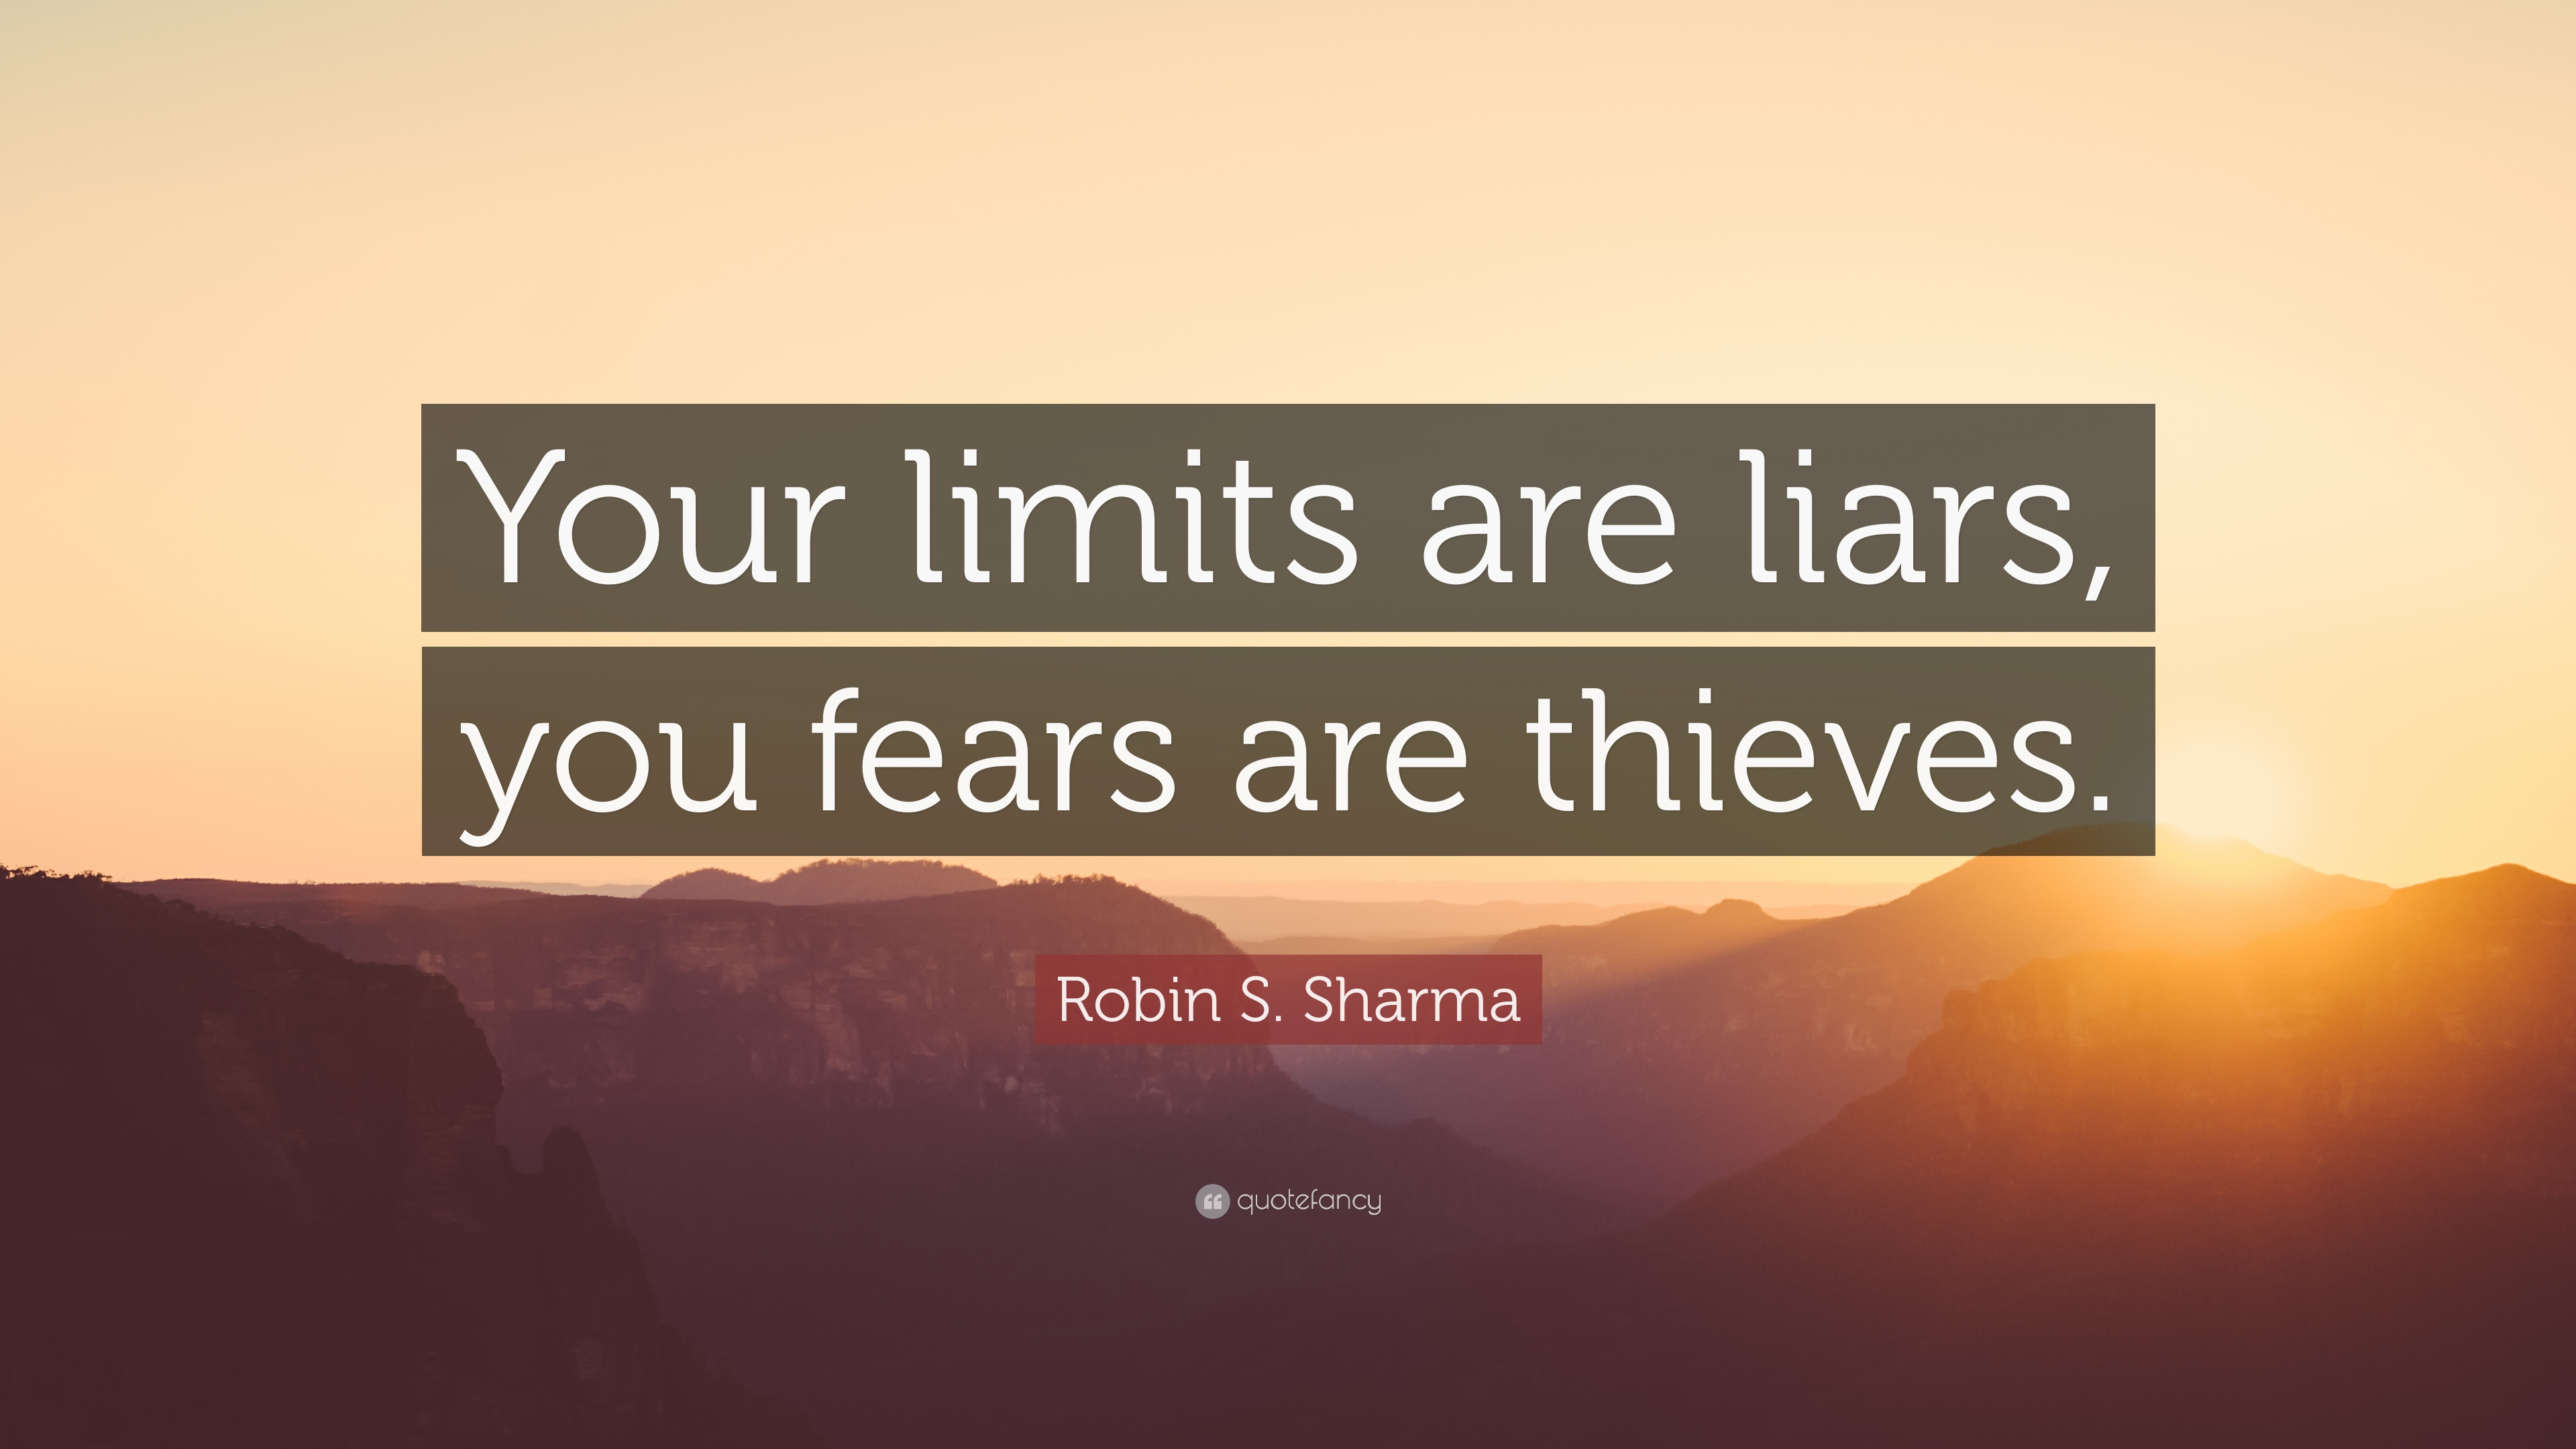 Quotes On Thieves And Liars. Quotes On Thieves And Liars